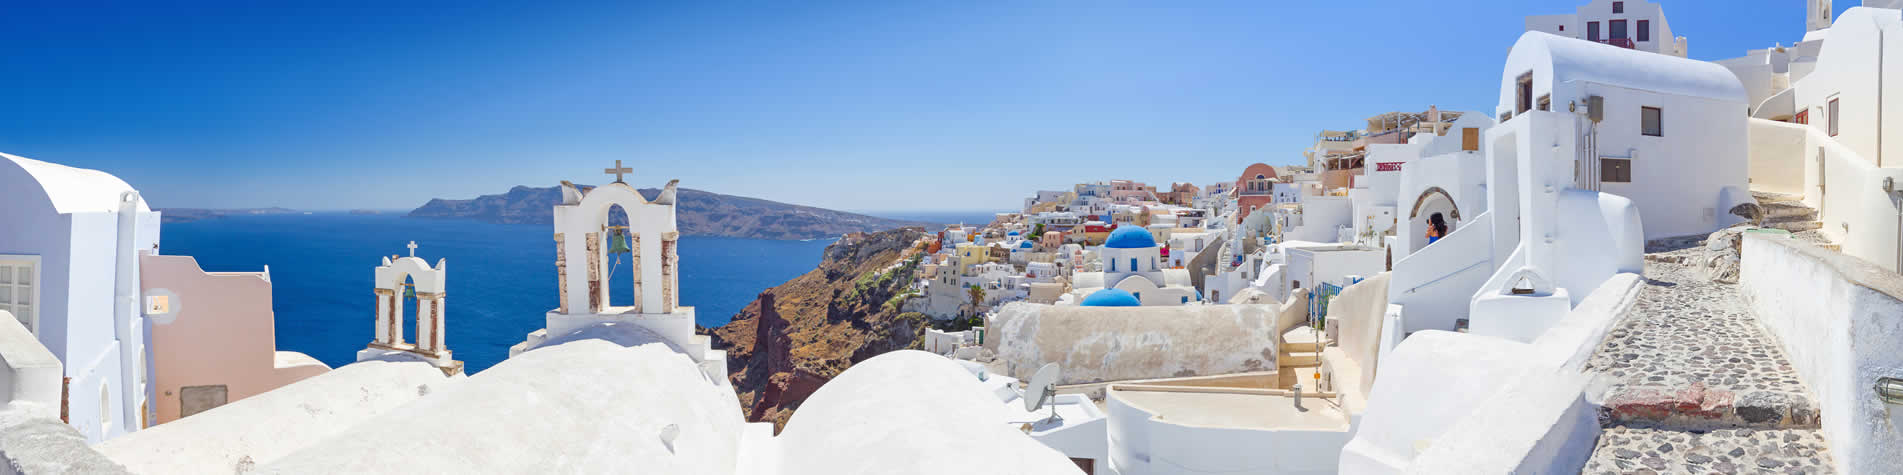 Island Hopping Holidays in Greece